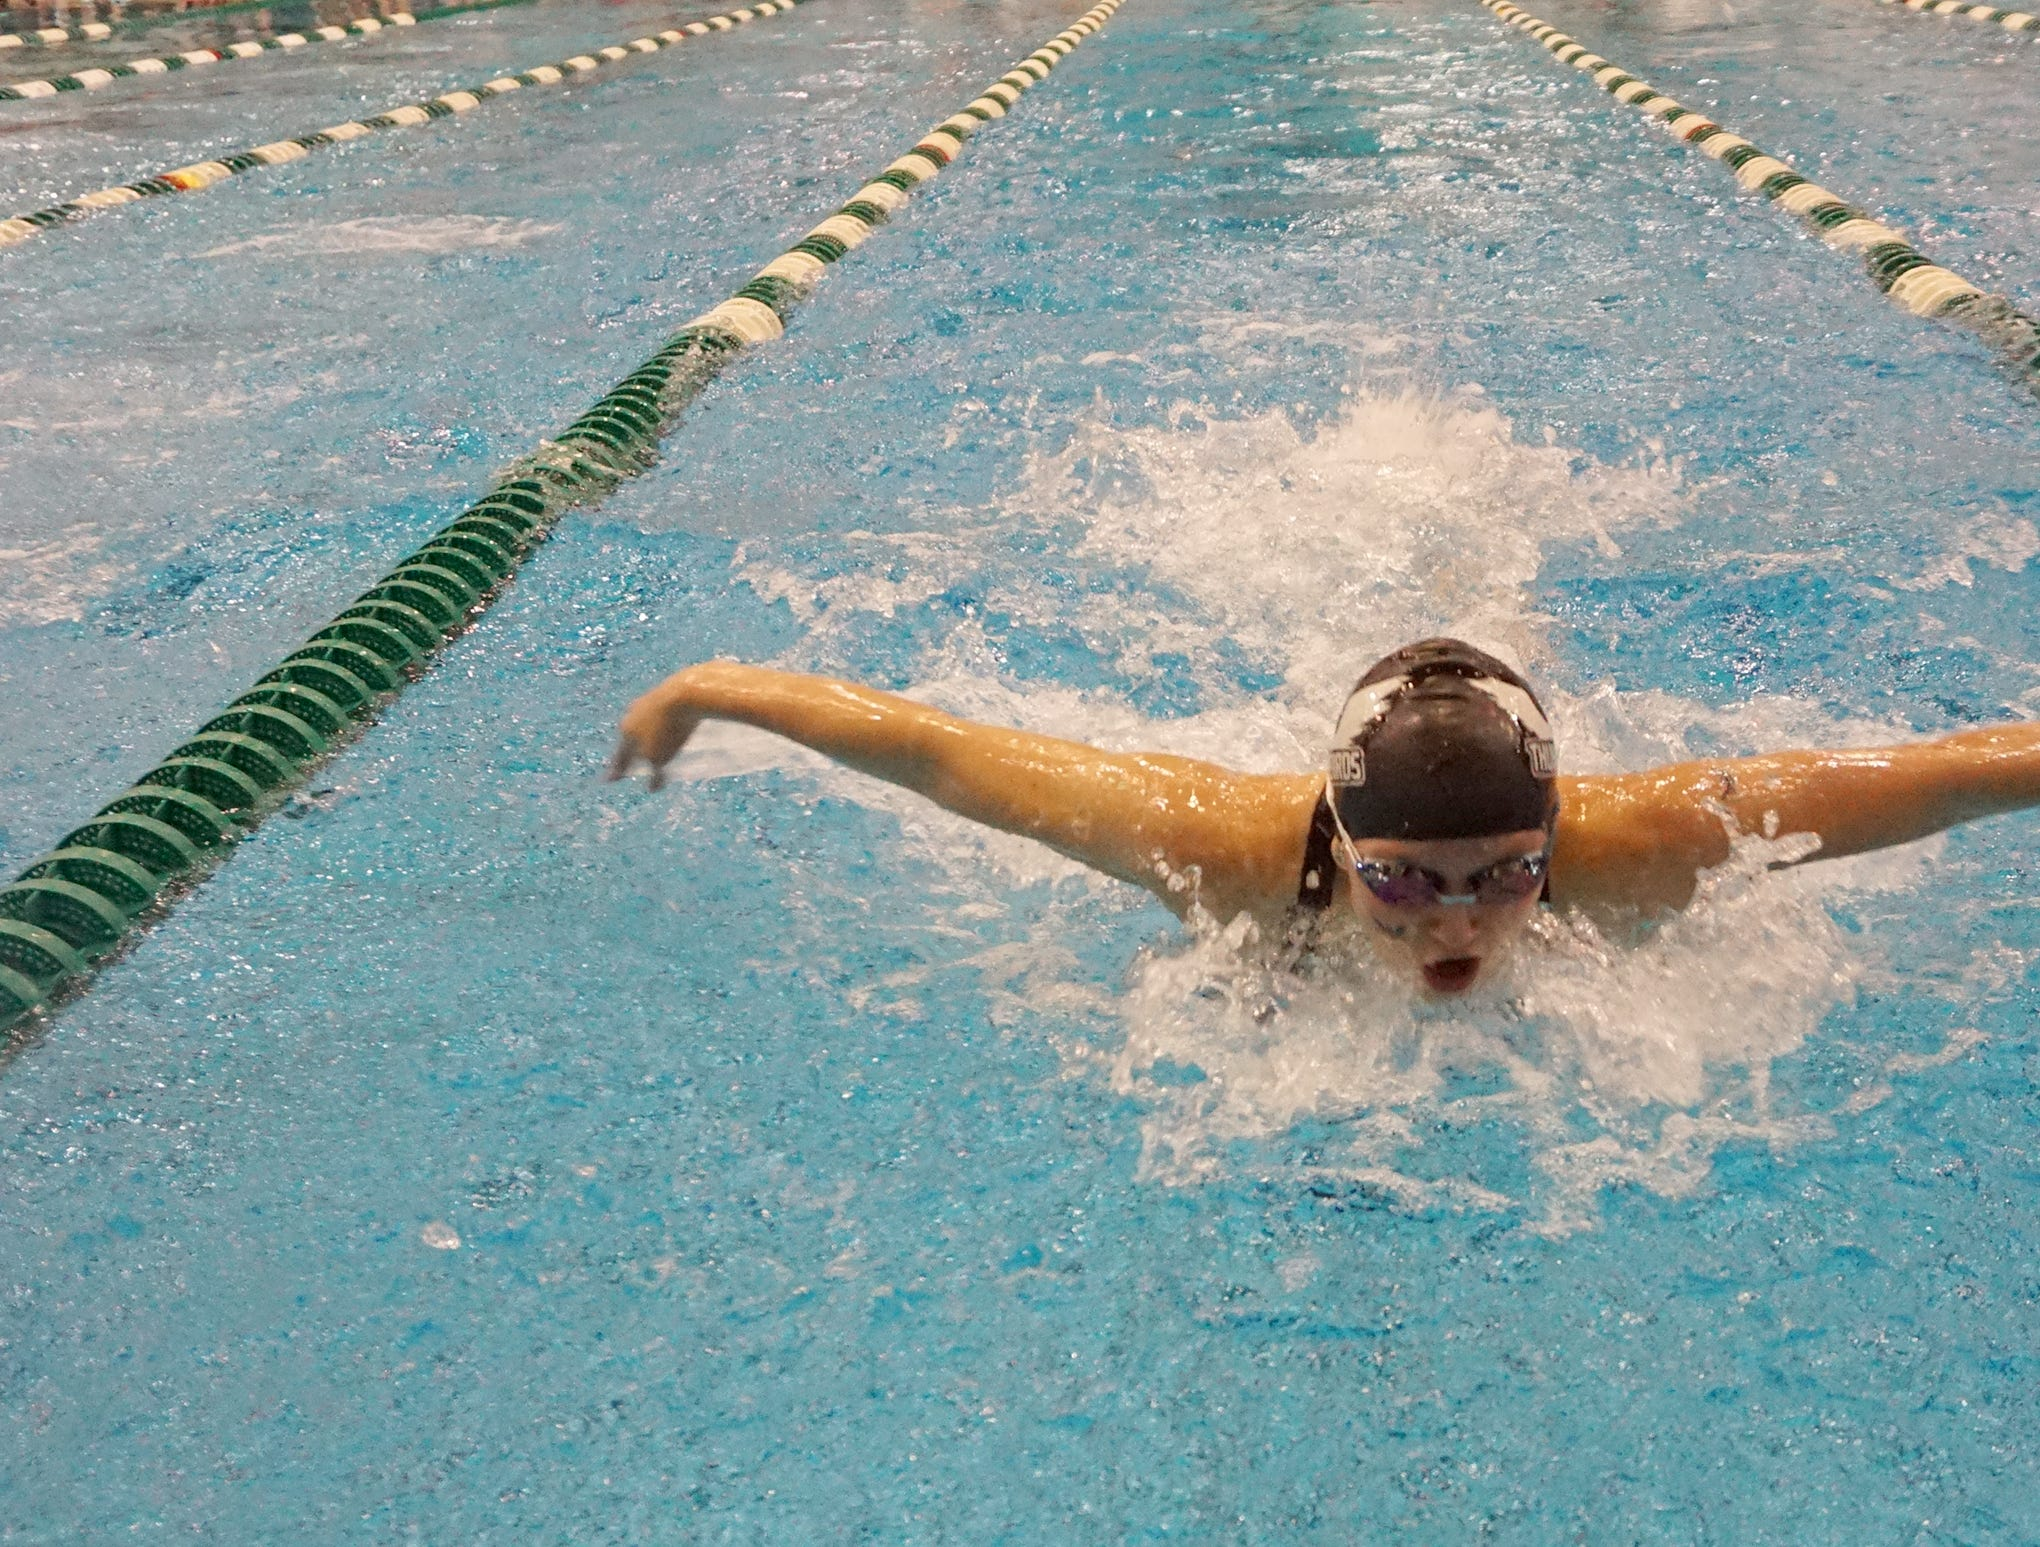 Madeline Greaves from Harrison/Farmington swims to a third-place finish with a time of 55.14 in the 100 butterfly at the Division 1 girls swimming and diving championships held at Eastern Michigan University Nov. 17, 2018.